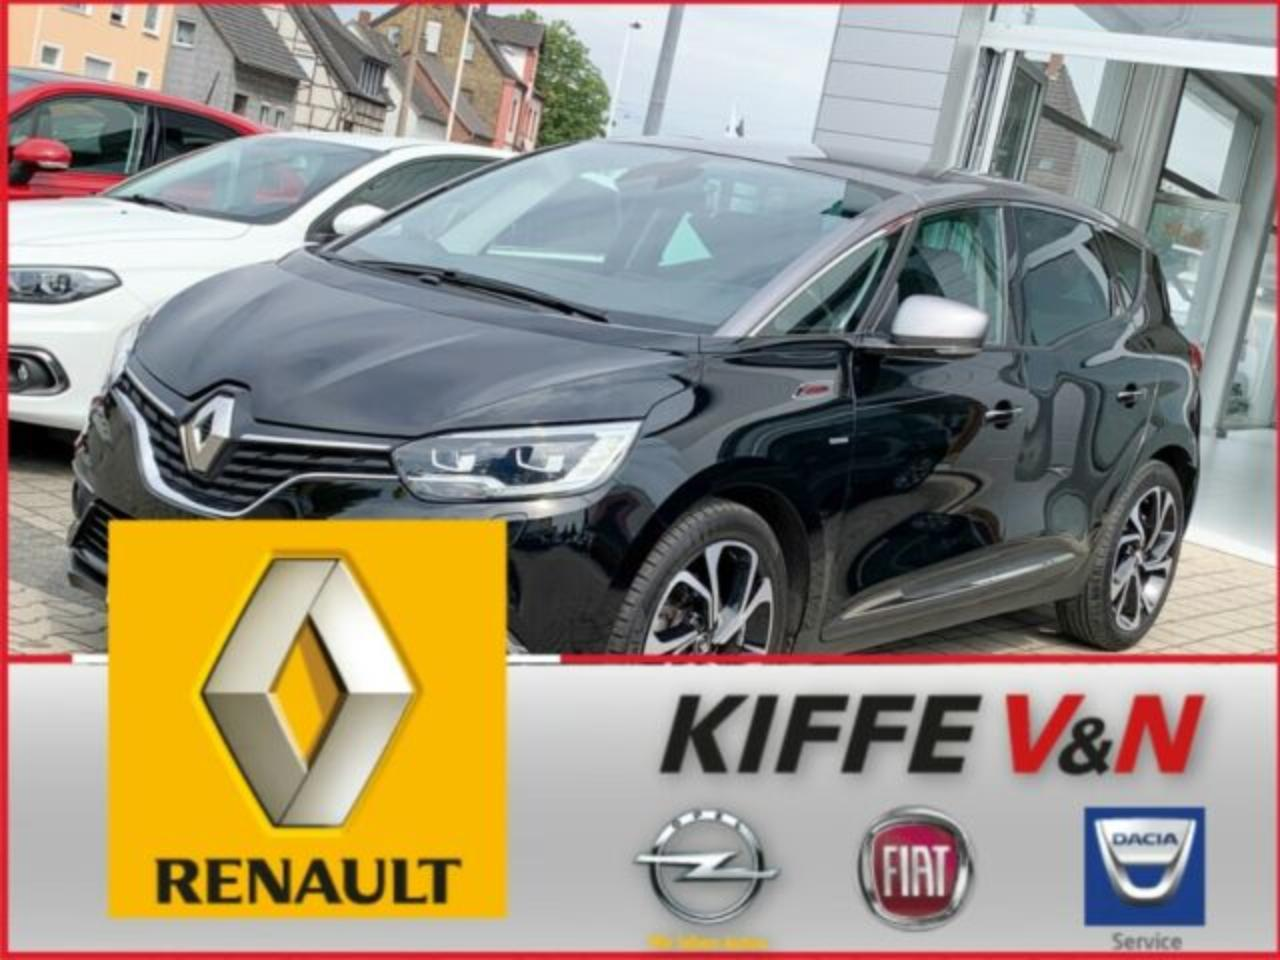 Renault Scenic 1.6 BOSE dCi 130 PDC LED HUD MASSAGE PDC